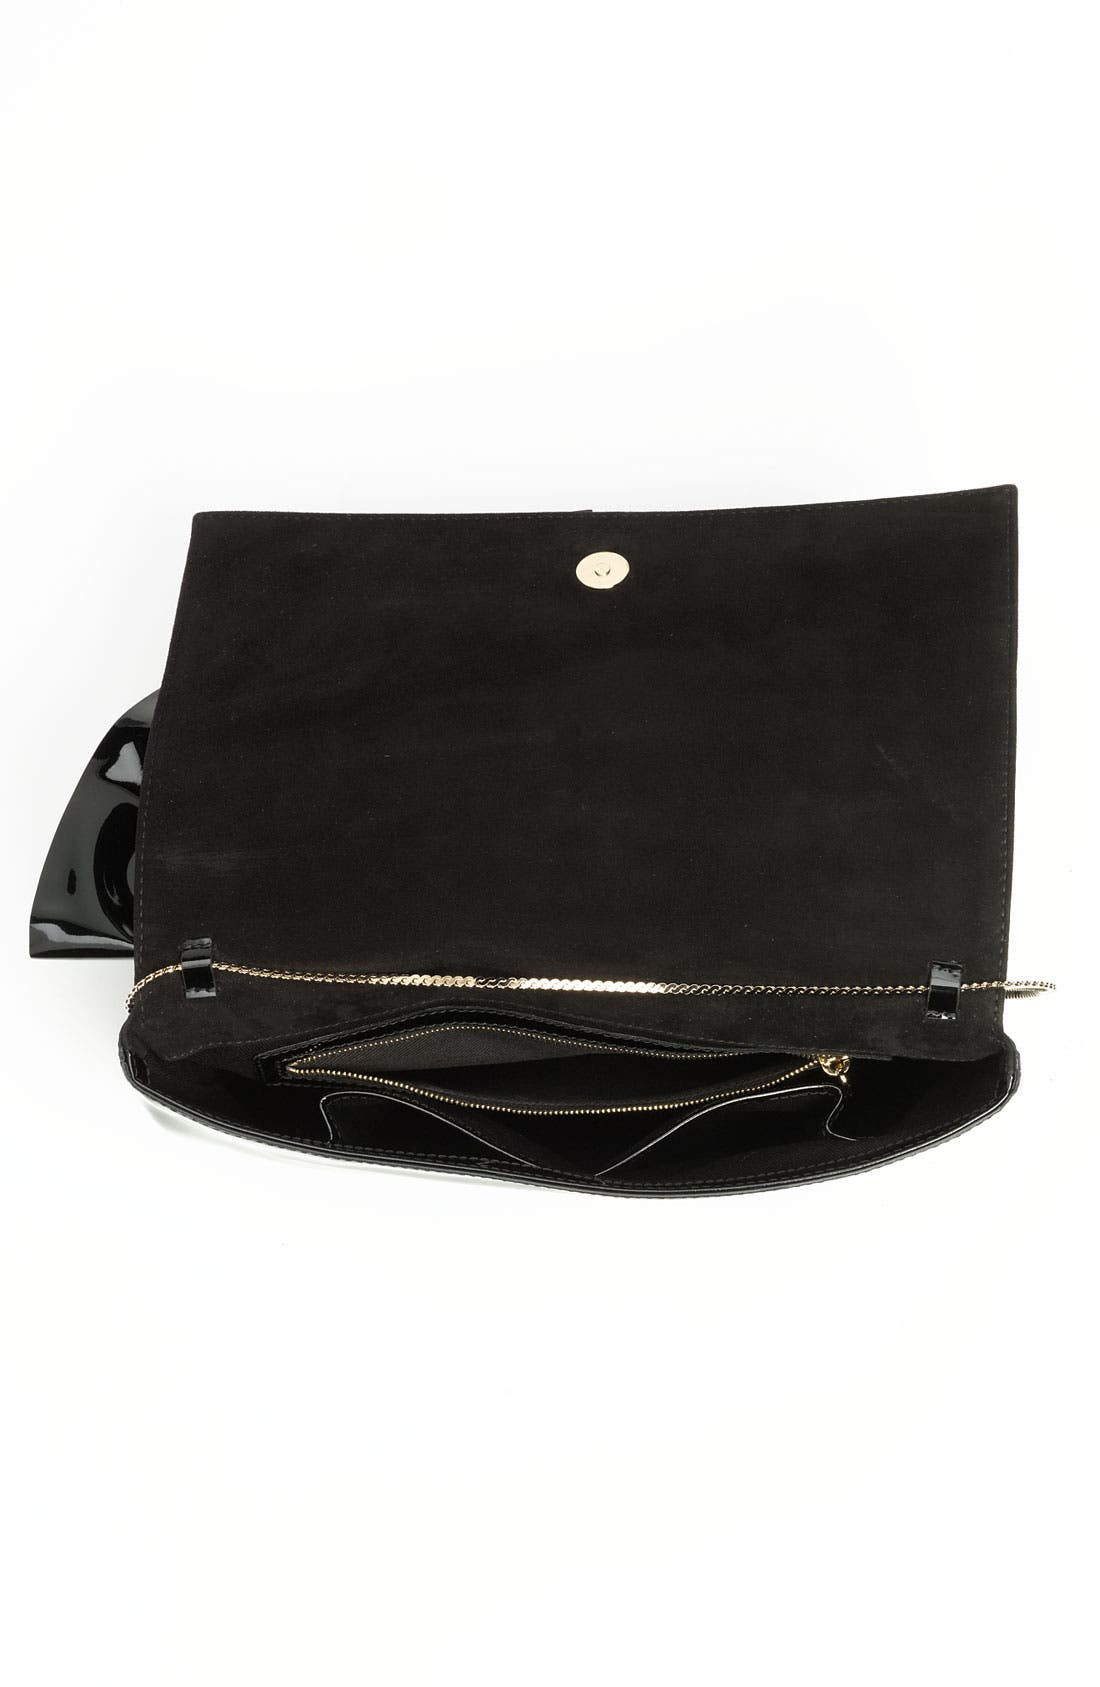 'Lacca Bow' Clutch,                             Alternate thumbnail 4, color,                             001